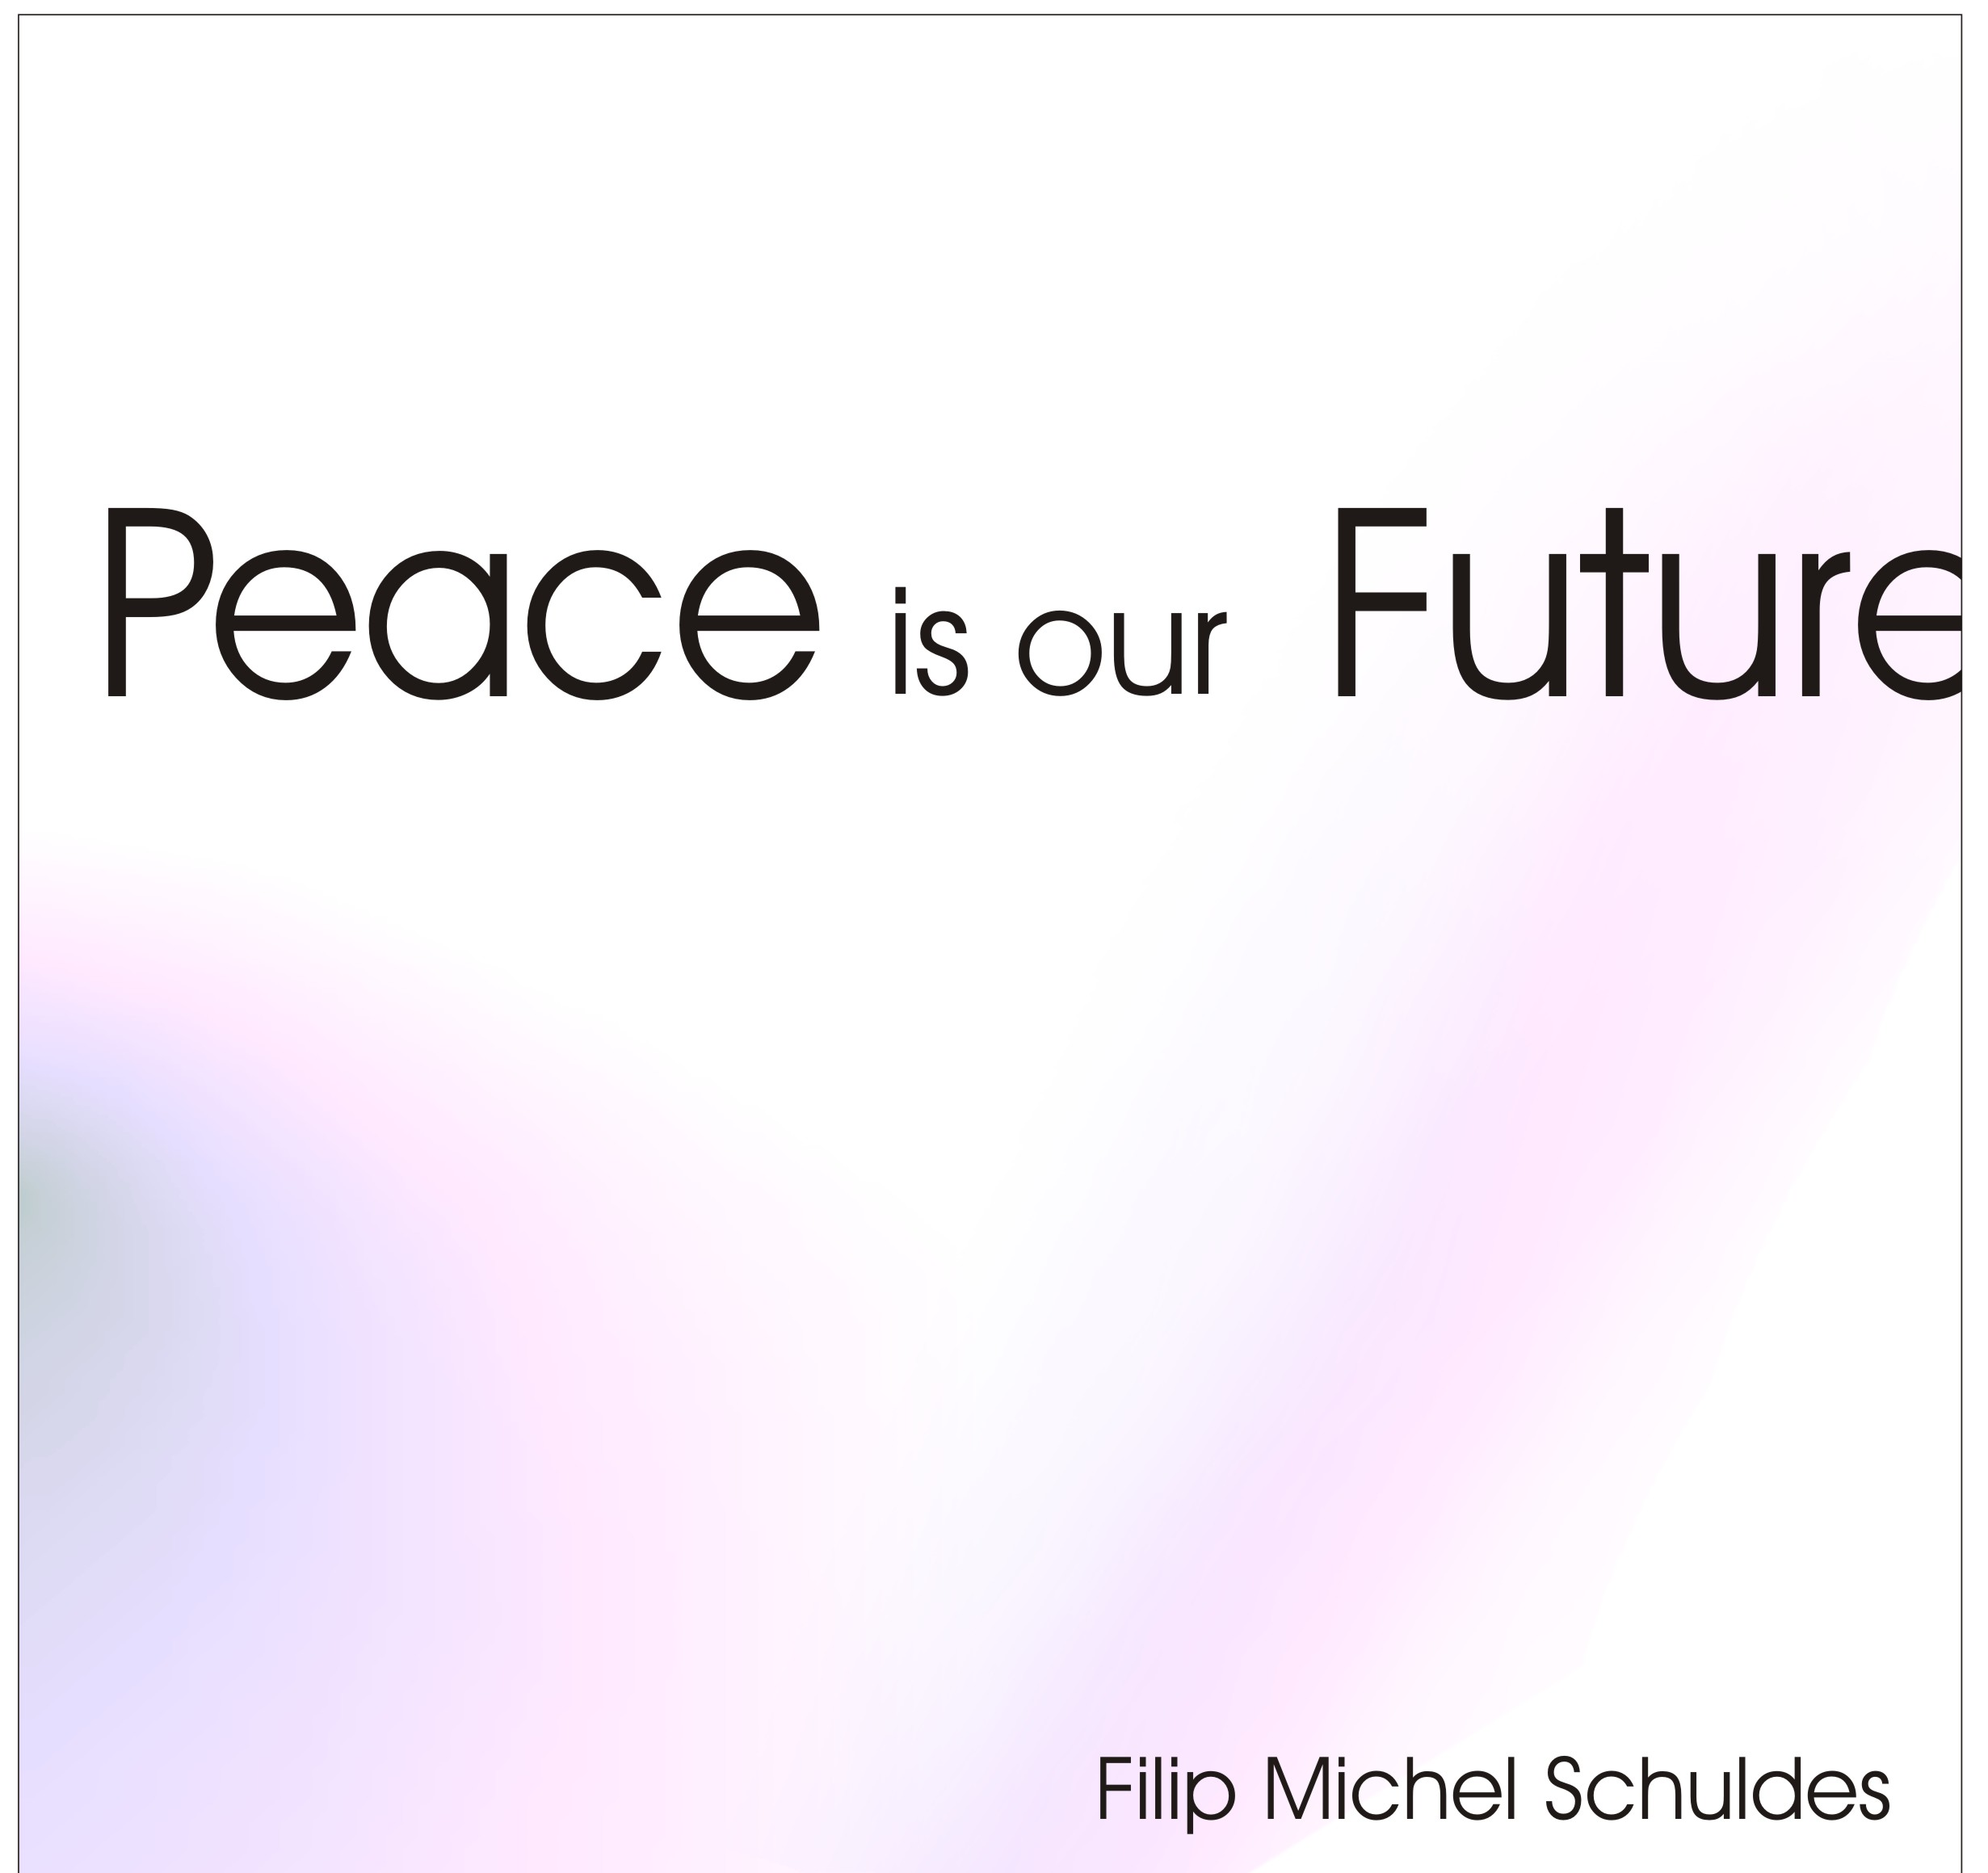 Peace is our Future